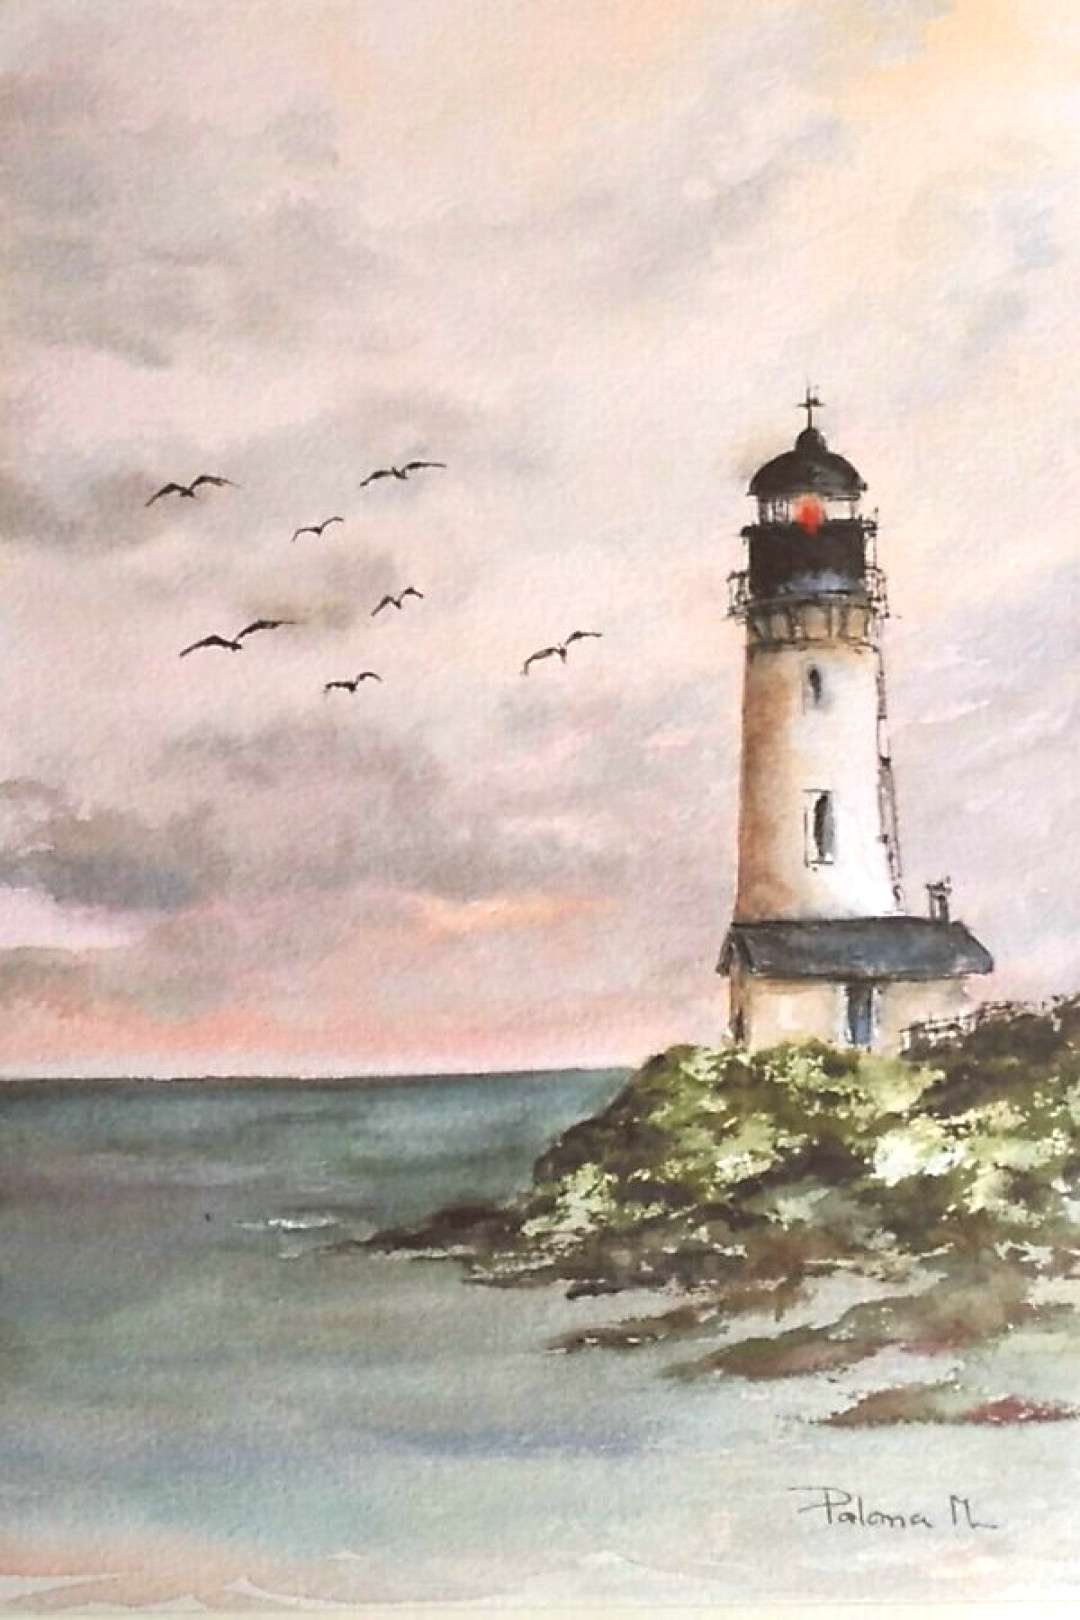 35 Simple Watercolor Landscape Painting Ideas To Try Out Artists Painting Ideas Aheyko Blog A